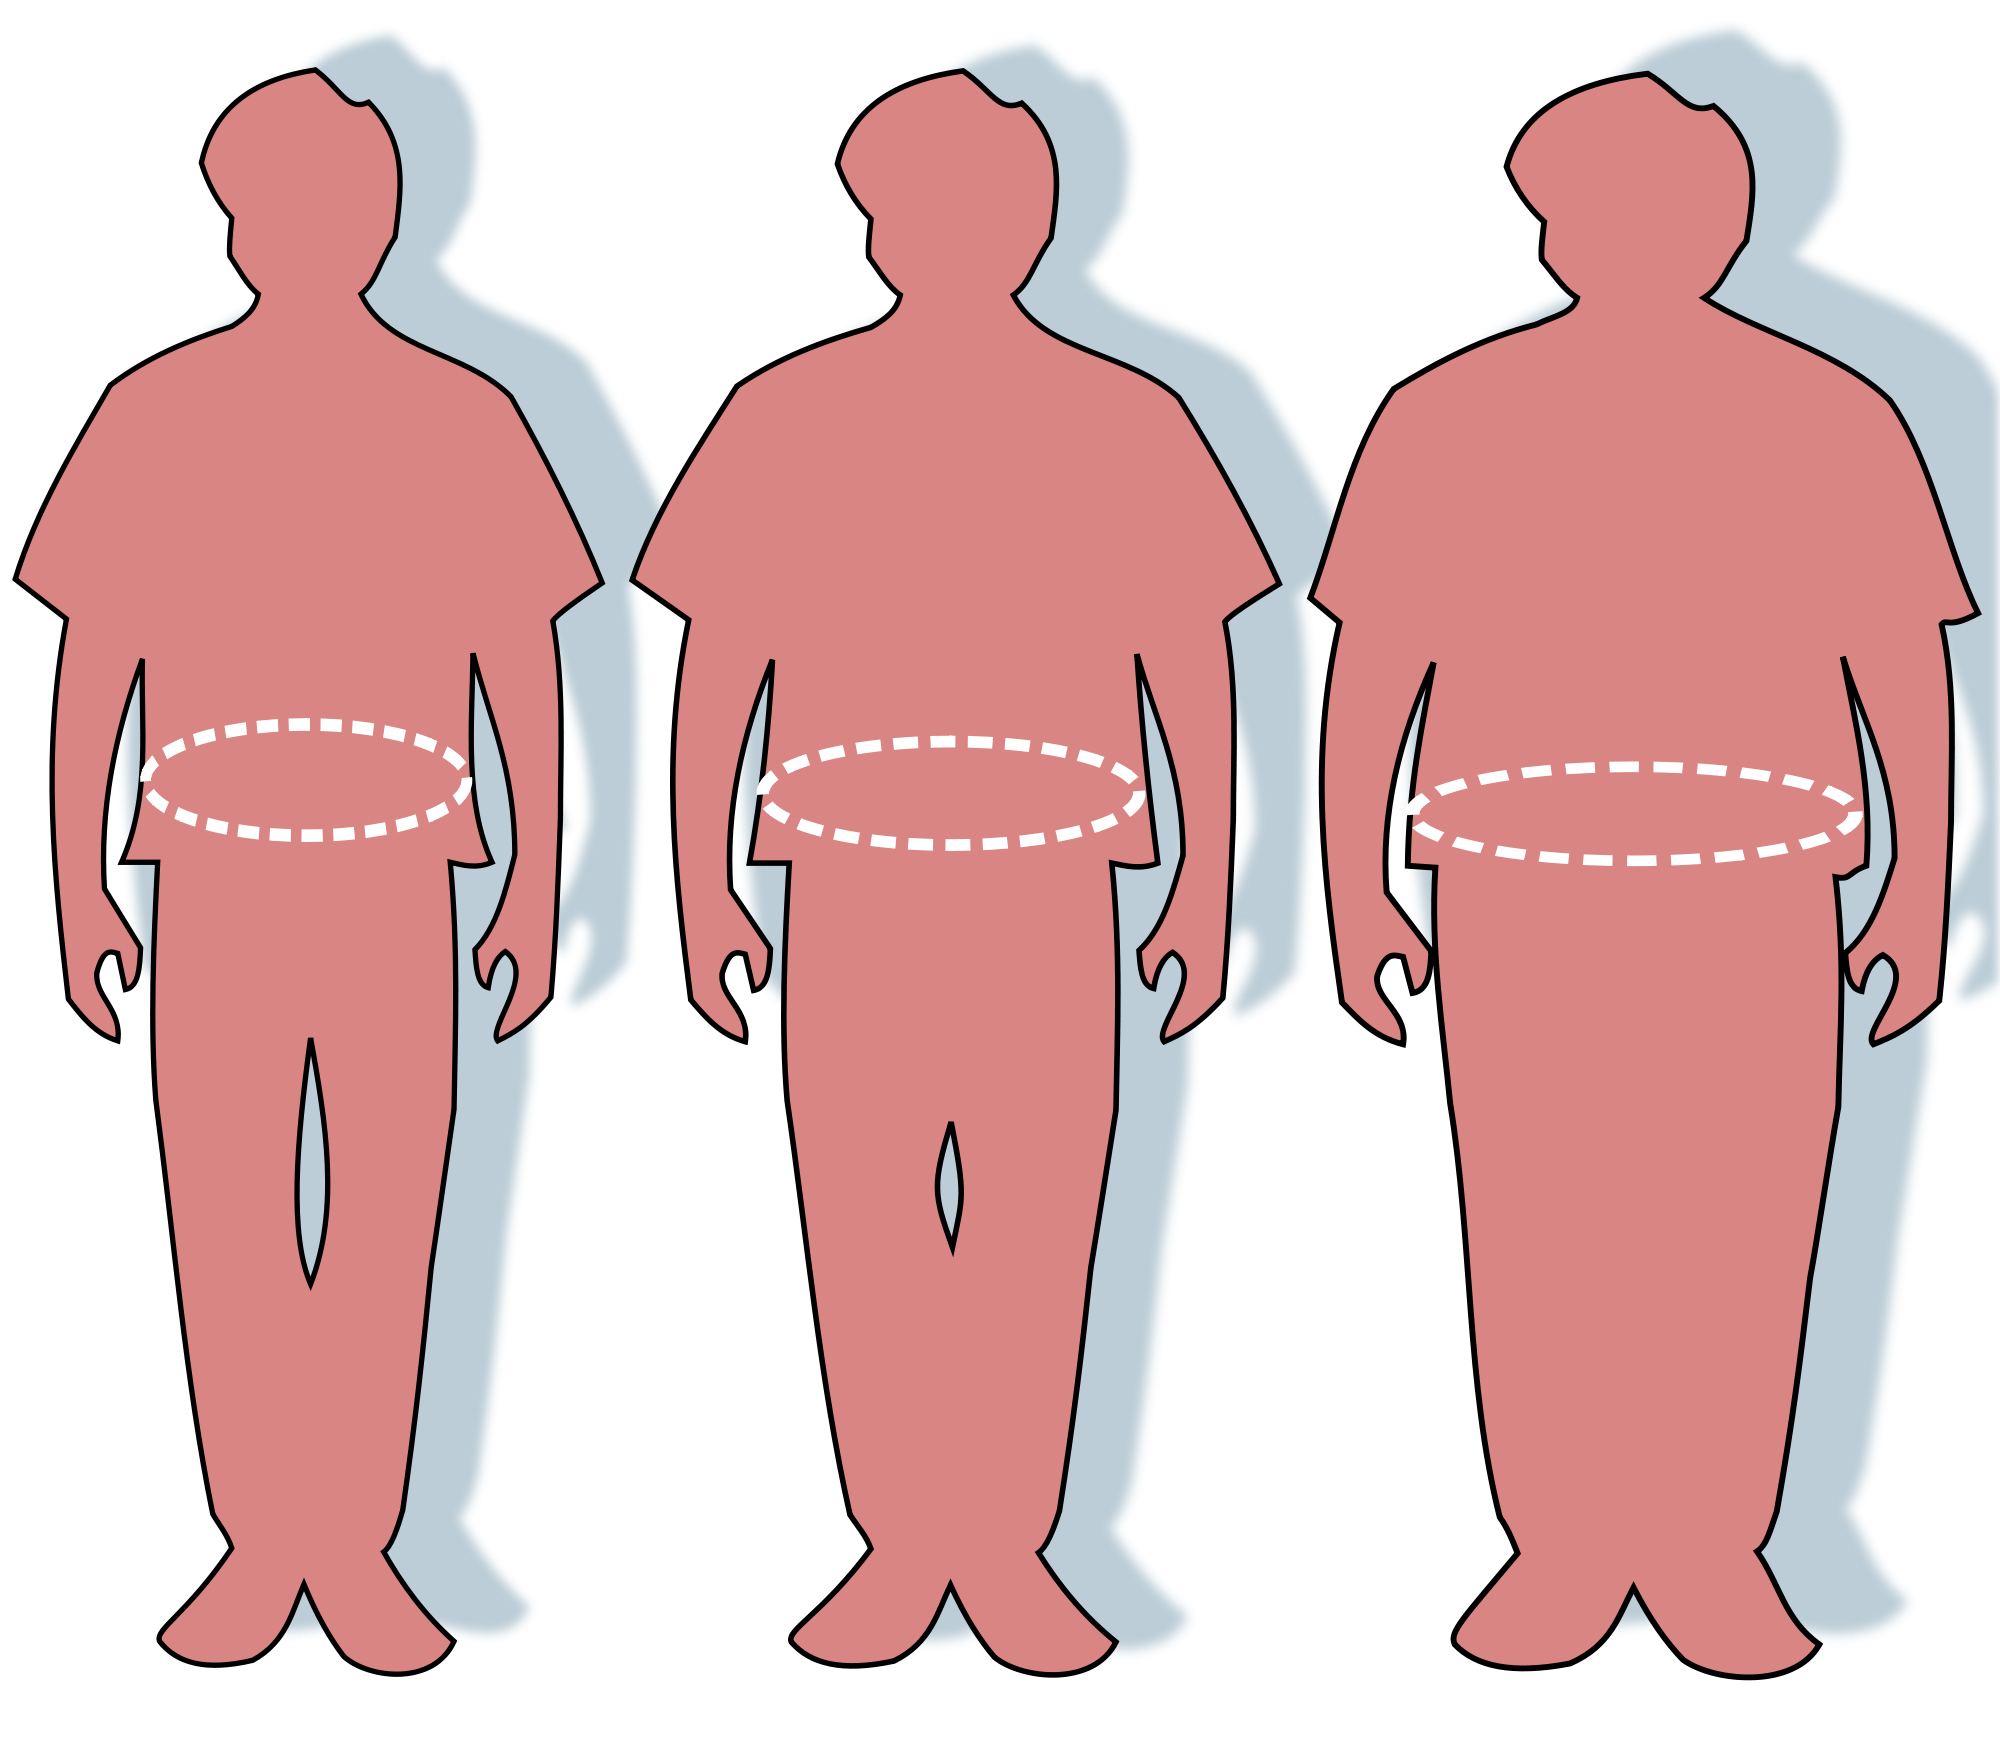 Fat clipart thin. Insights into signaling could